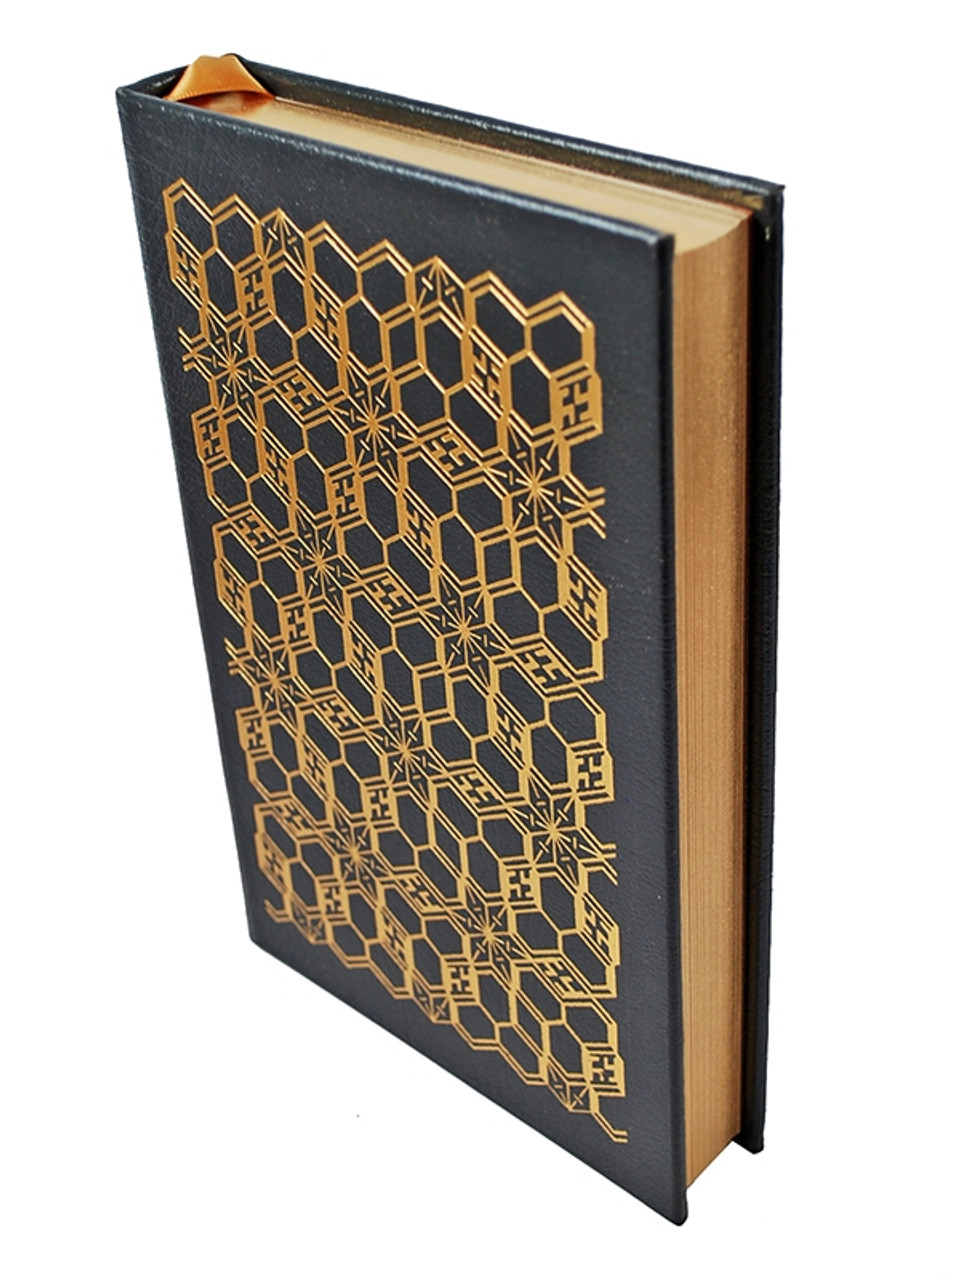 Easton Press Michael Z. Williamson Contact with Chaos Signed First Edition Leather Bound Book